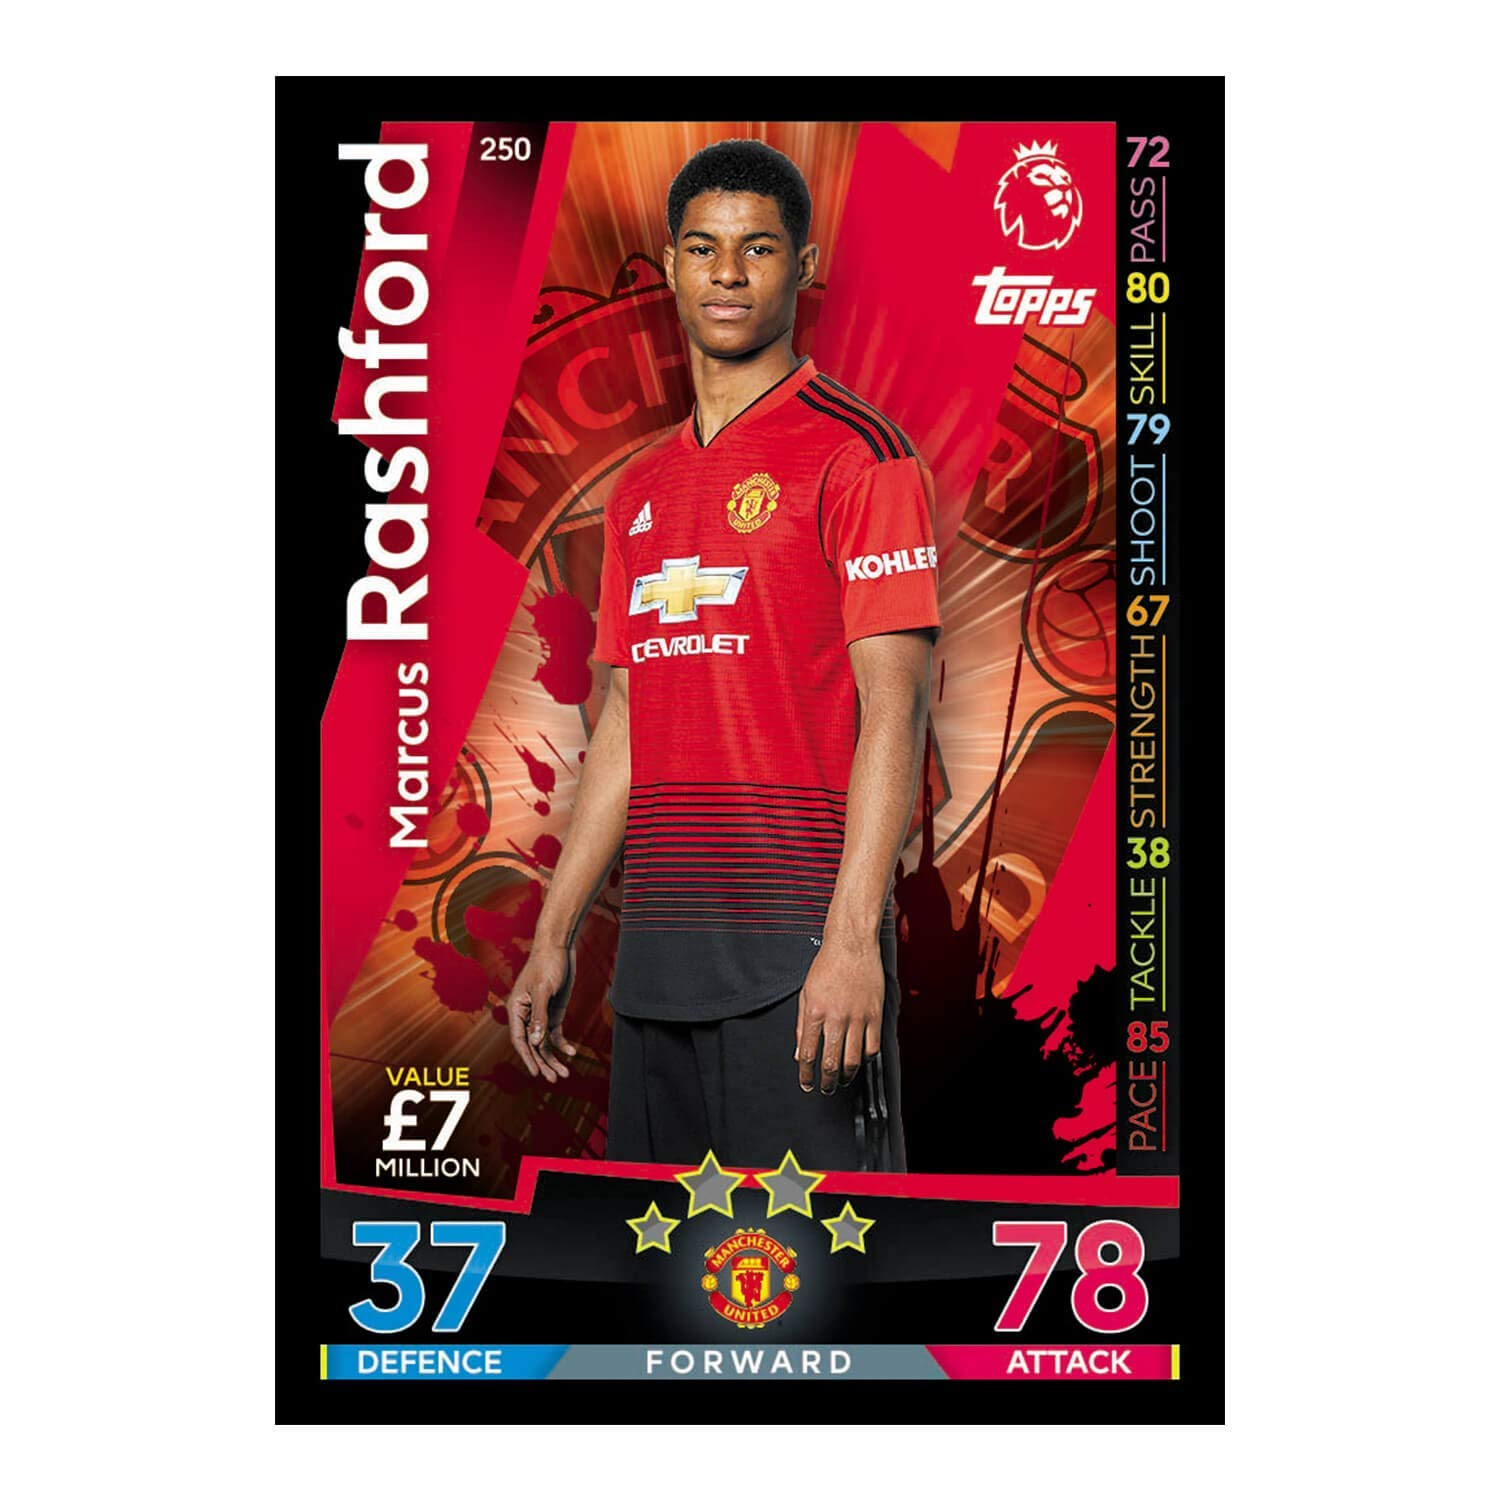 Buy Topps Match Attax Premier League 18/19 Trading Card in Singapore